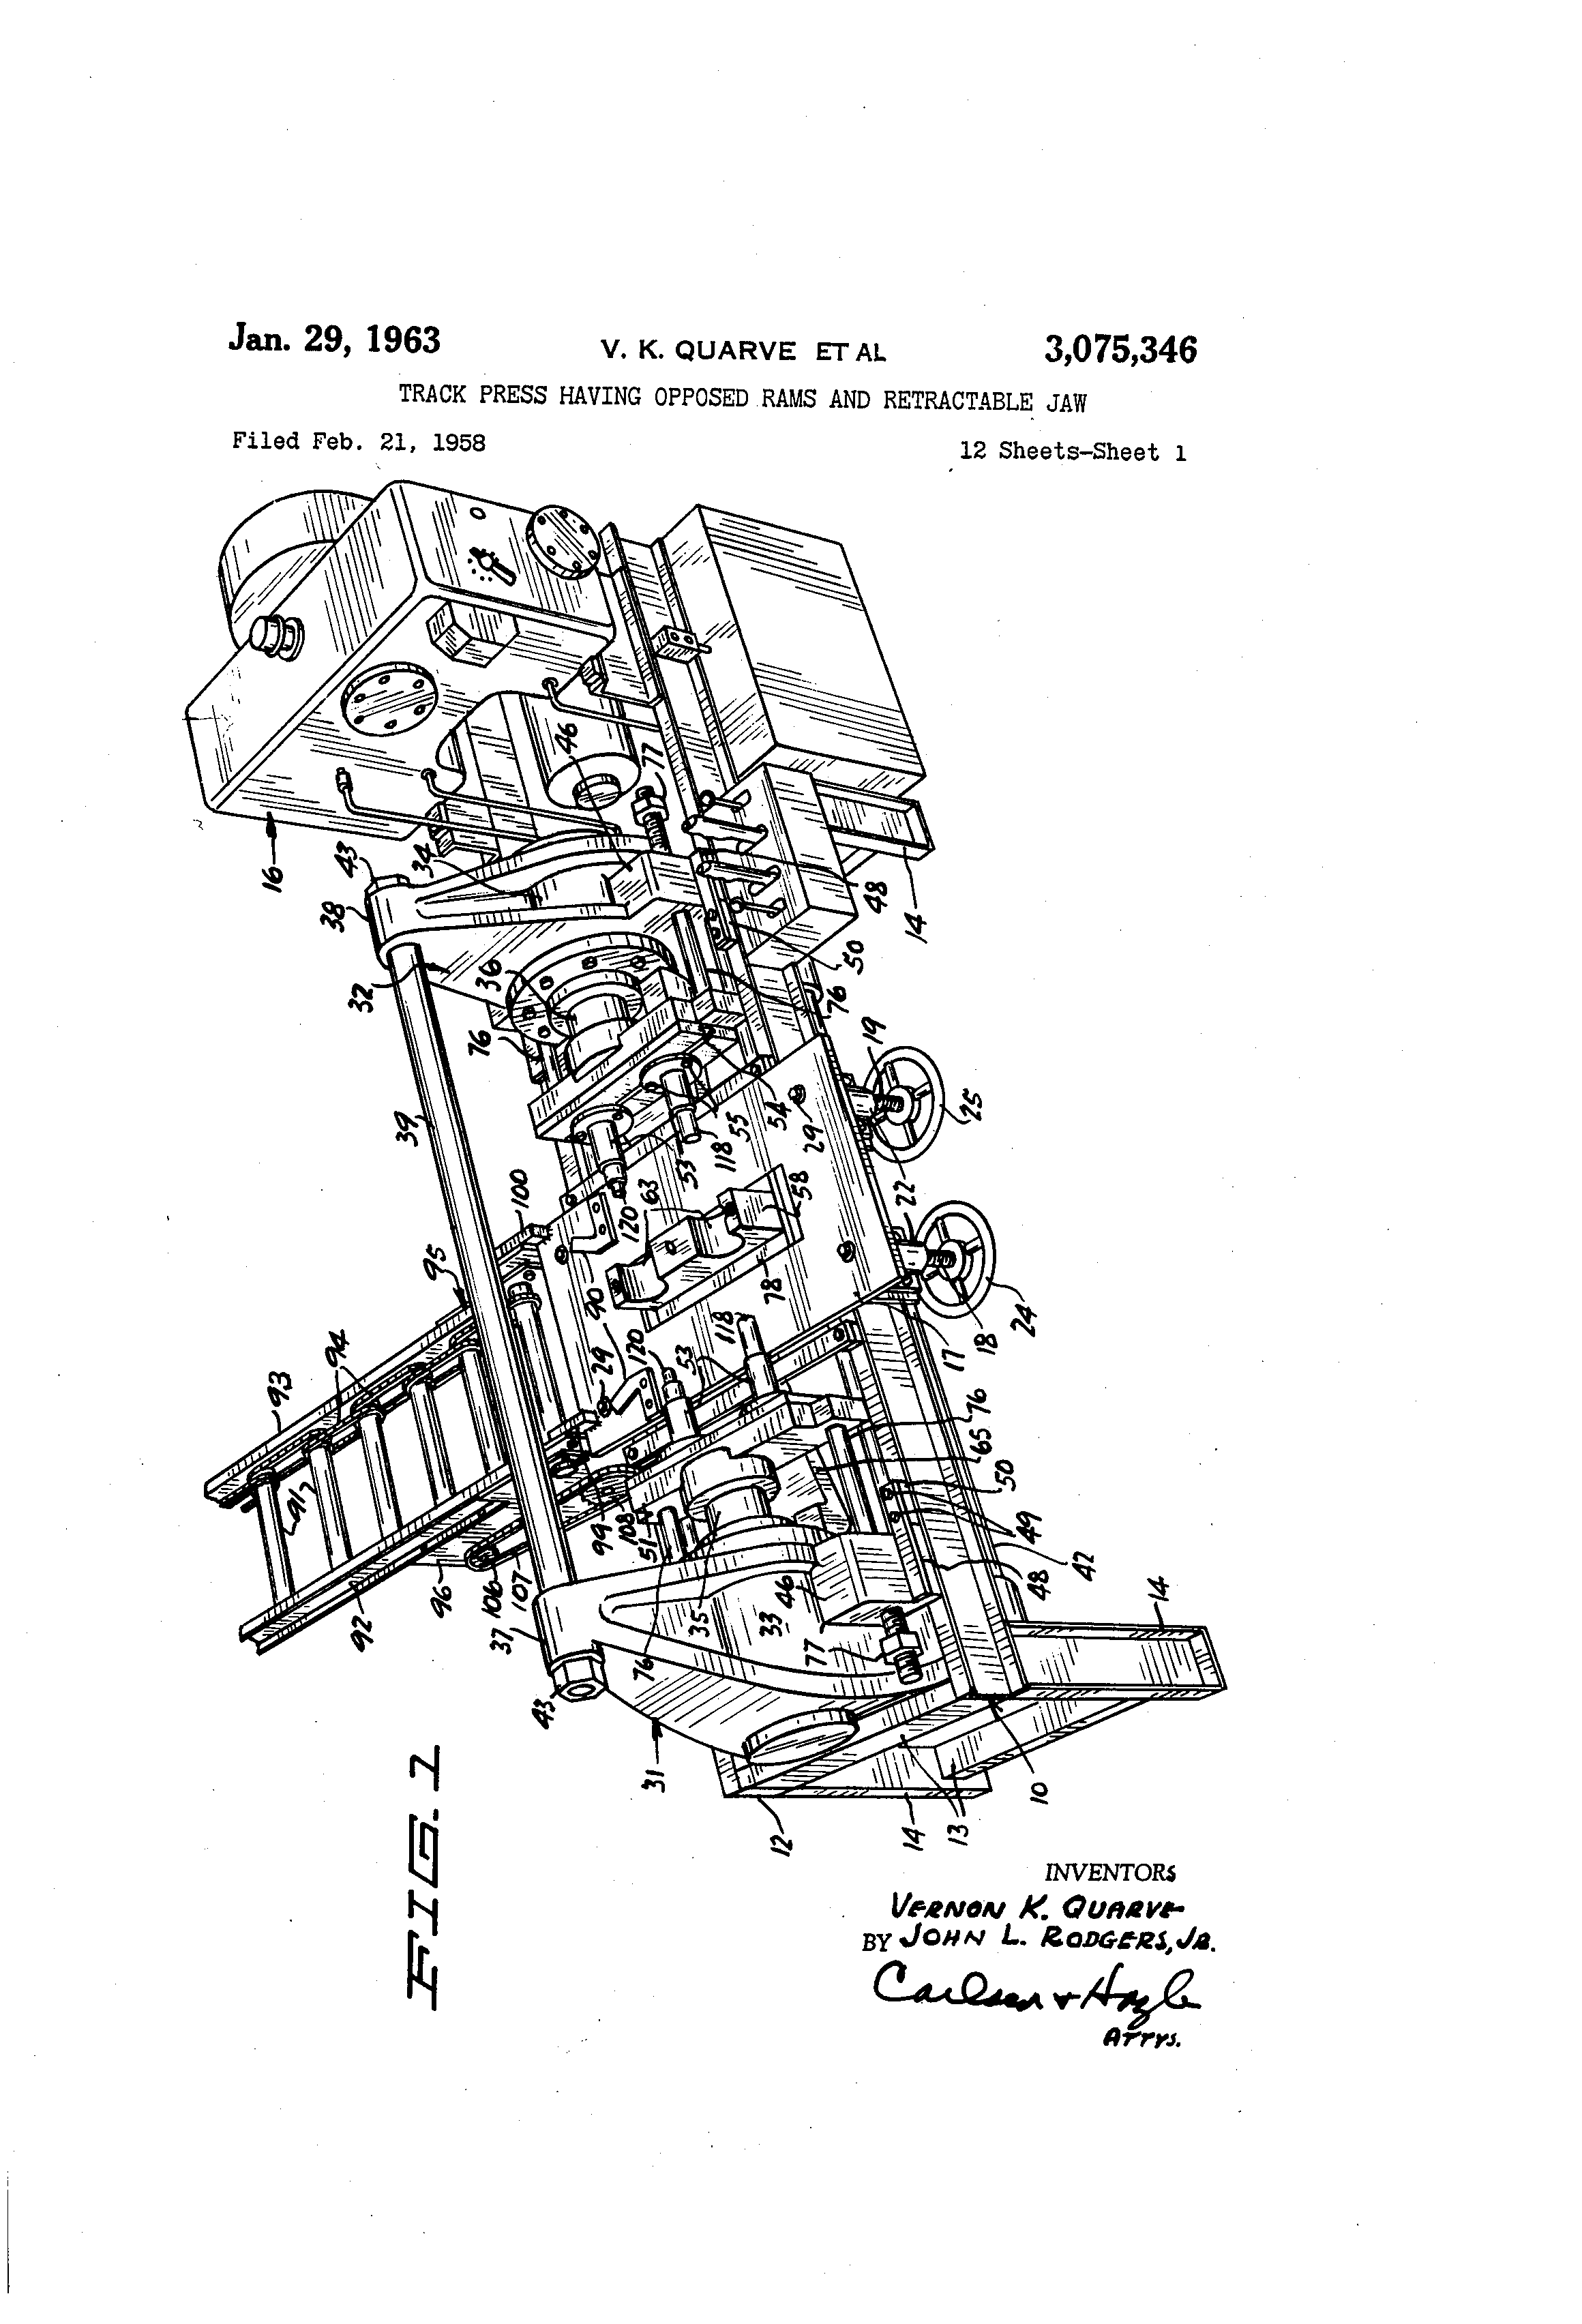 Patent Us3075346 Track Press Having Opposed Rams And Retractable 1986 Porsche Flat 6 Engine Diagram Drawing